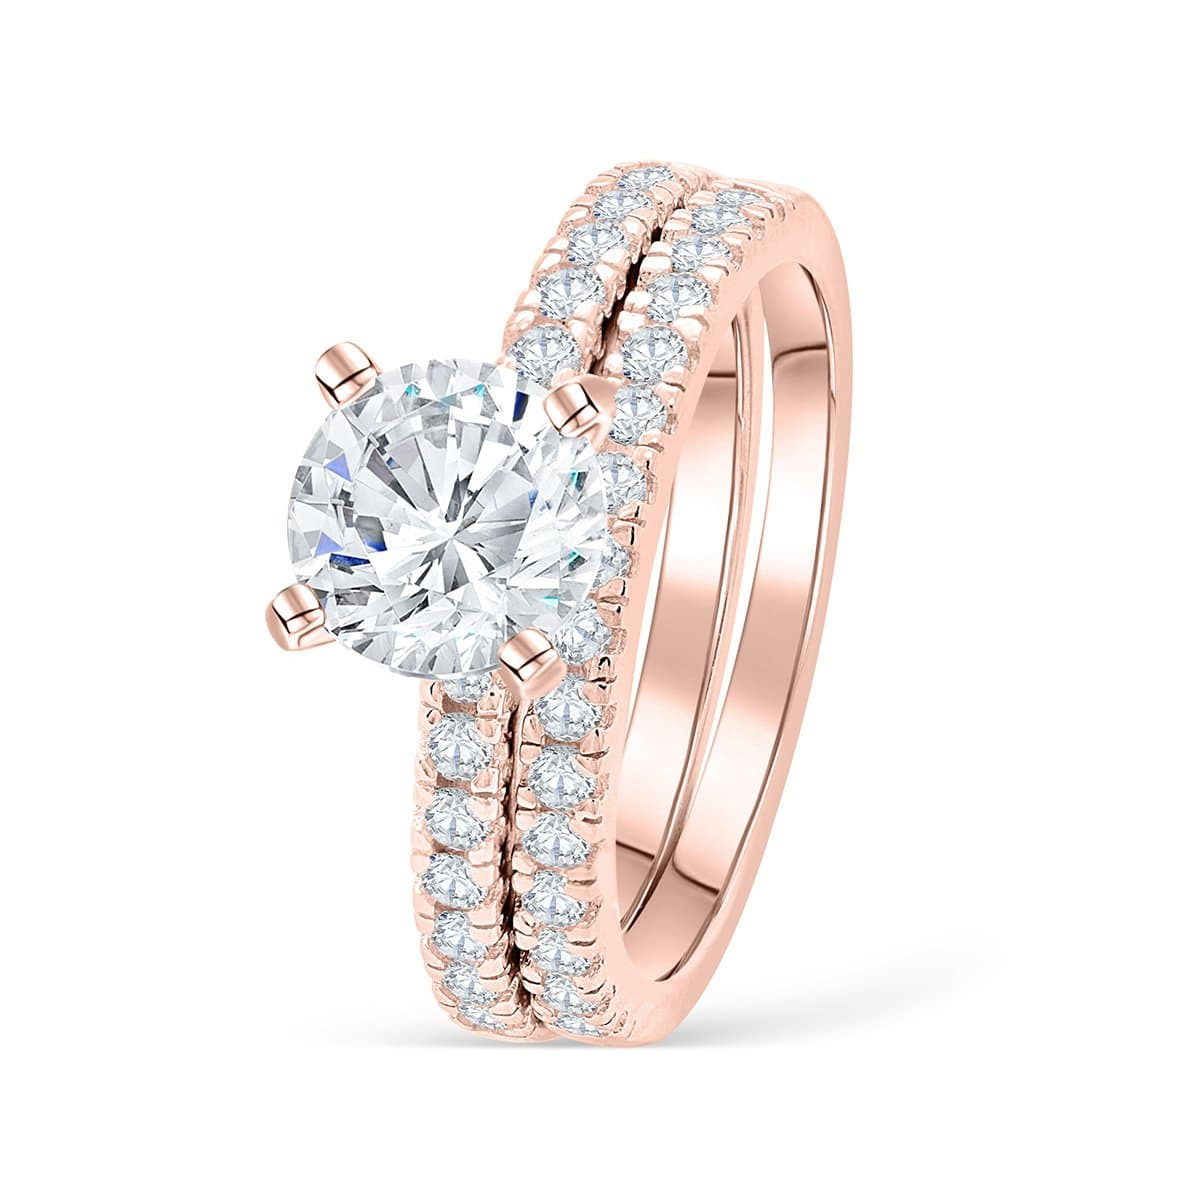 Rose Gold Wedding Ring.The Star Light Rose Gold